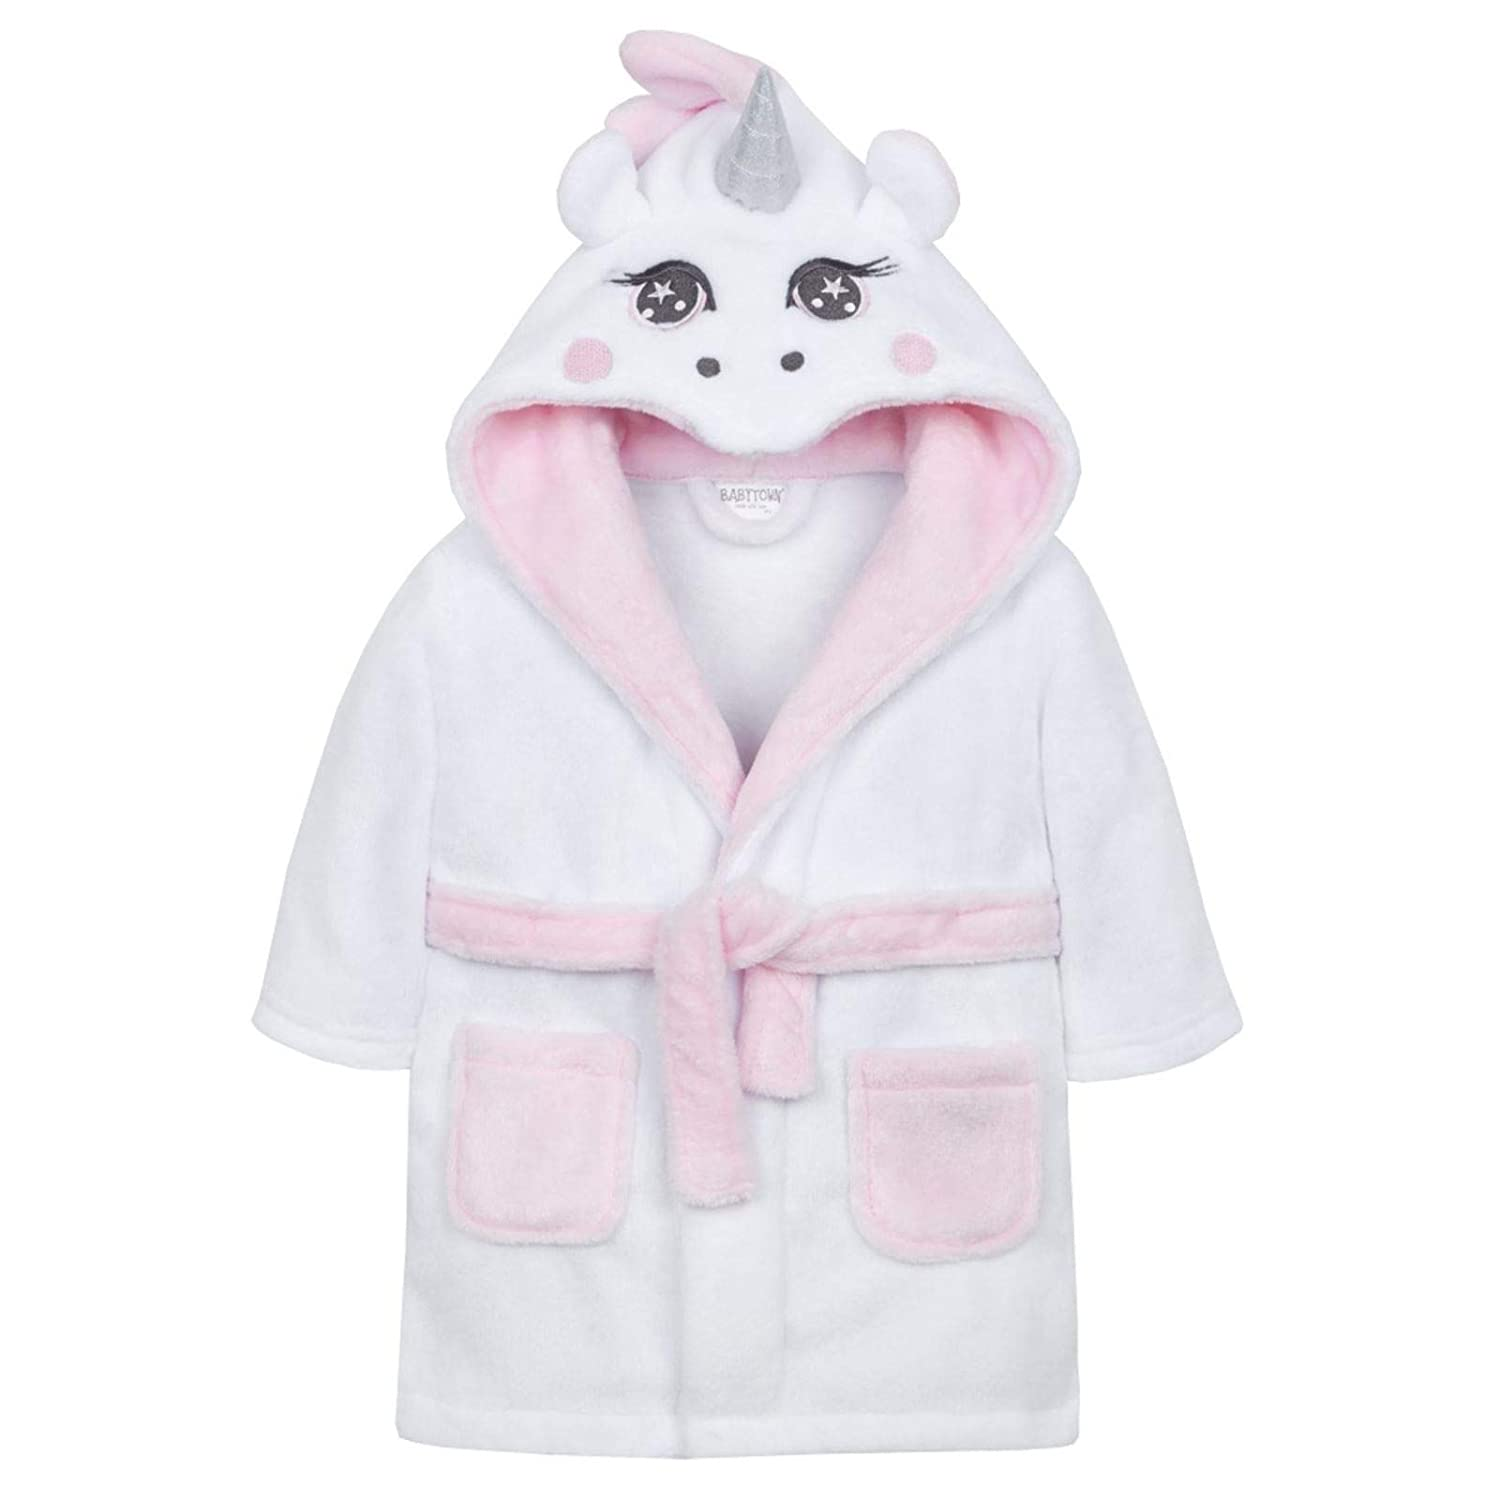 Baby Girls White Unicorn Hooded Plush Dressing Gown